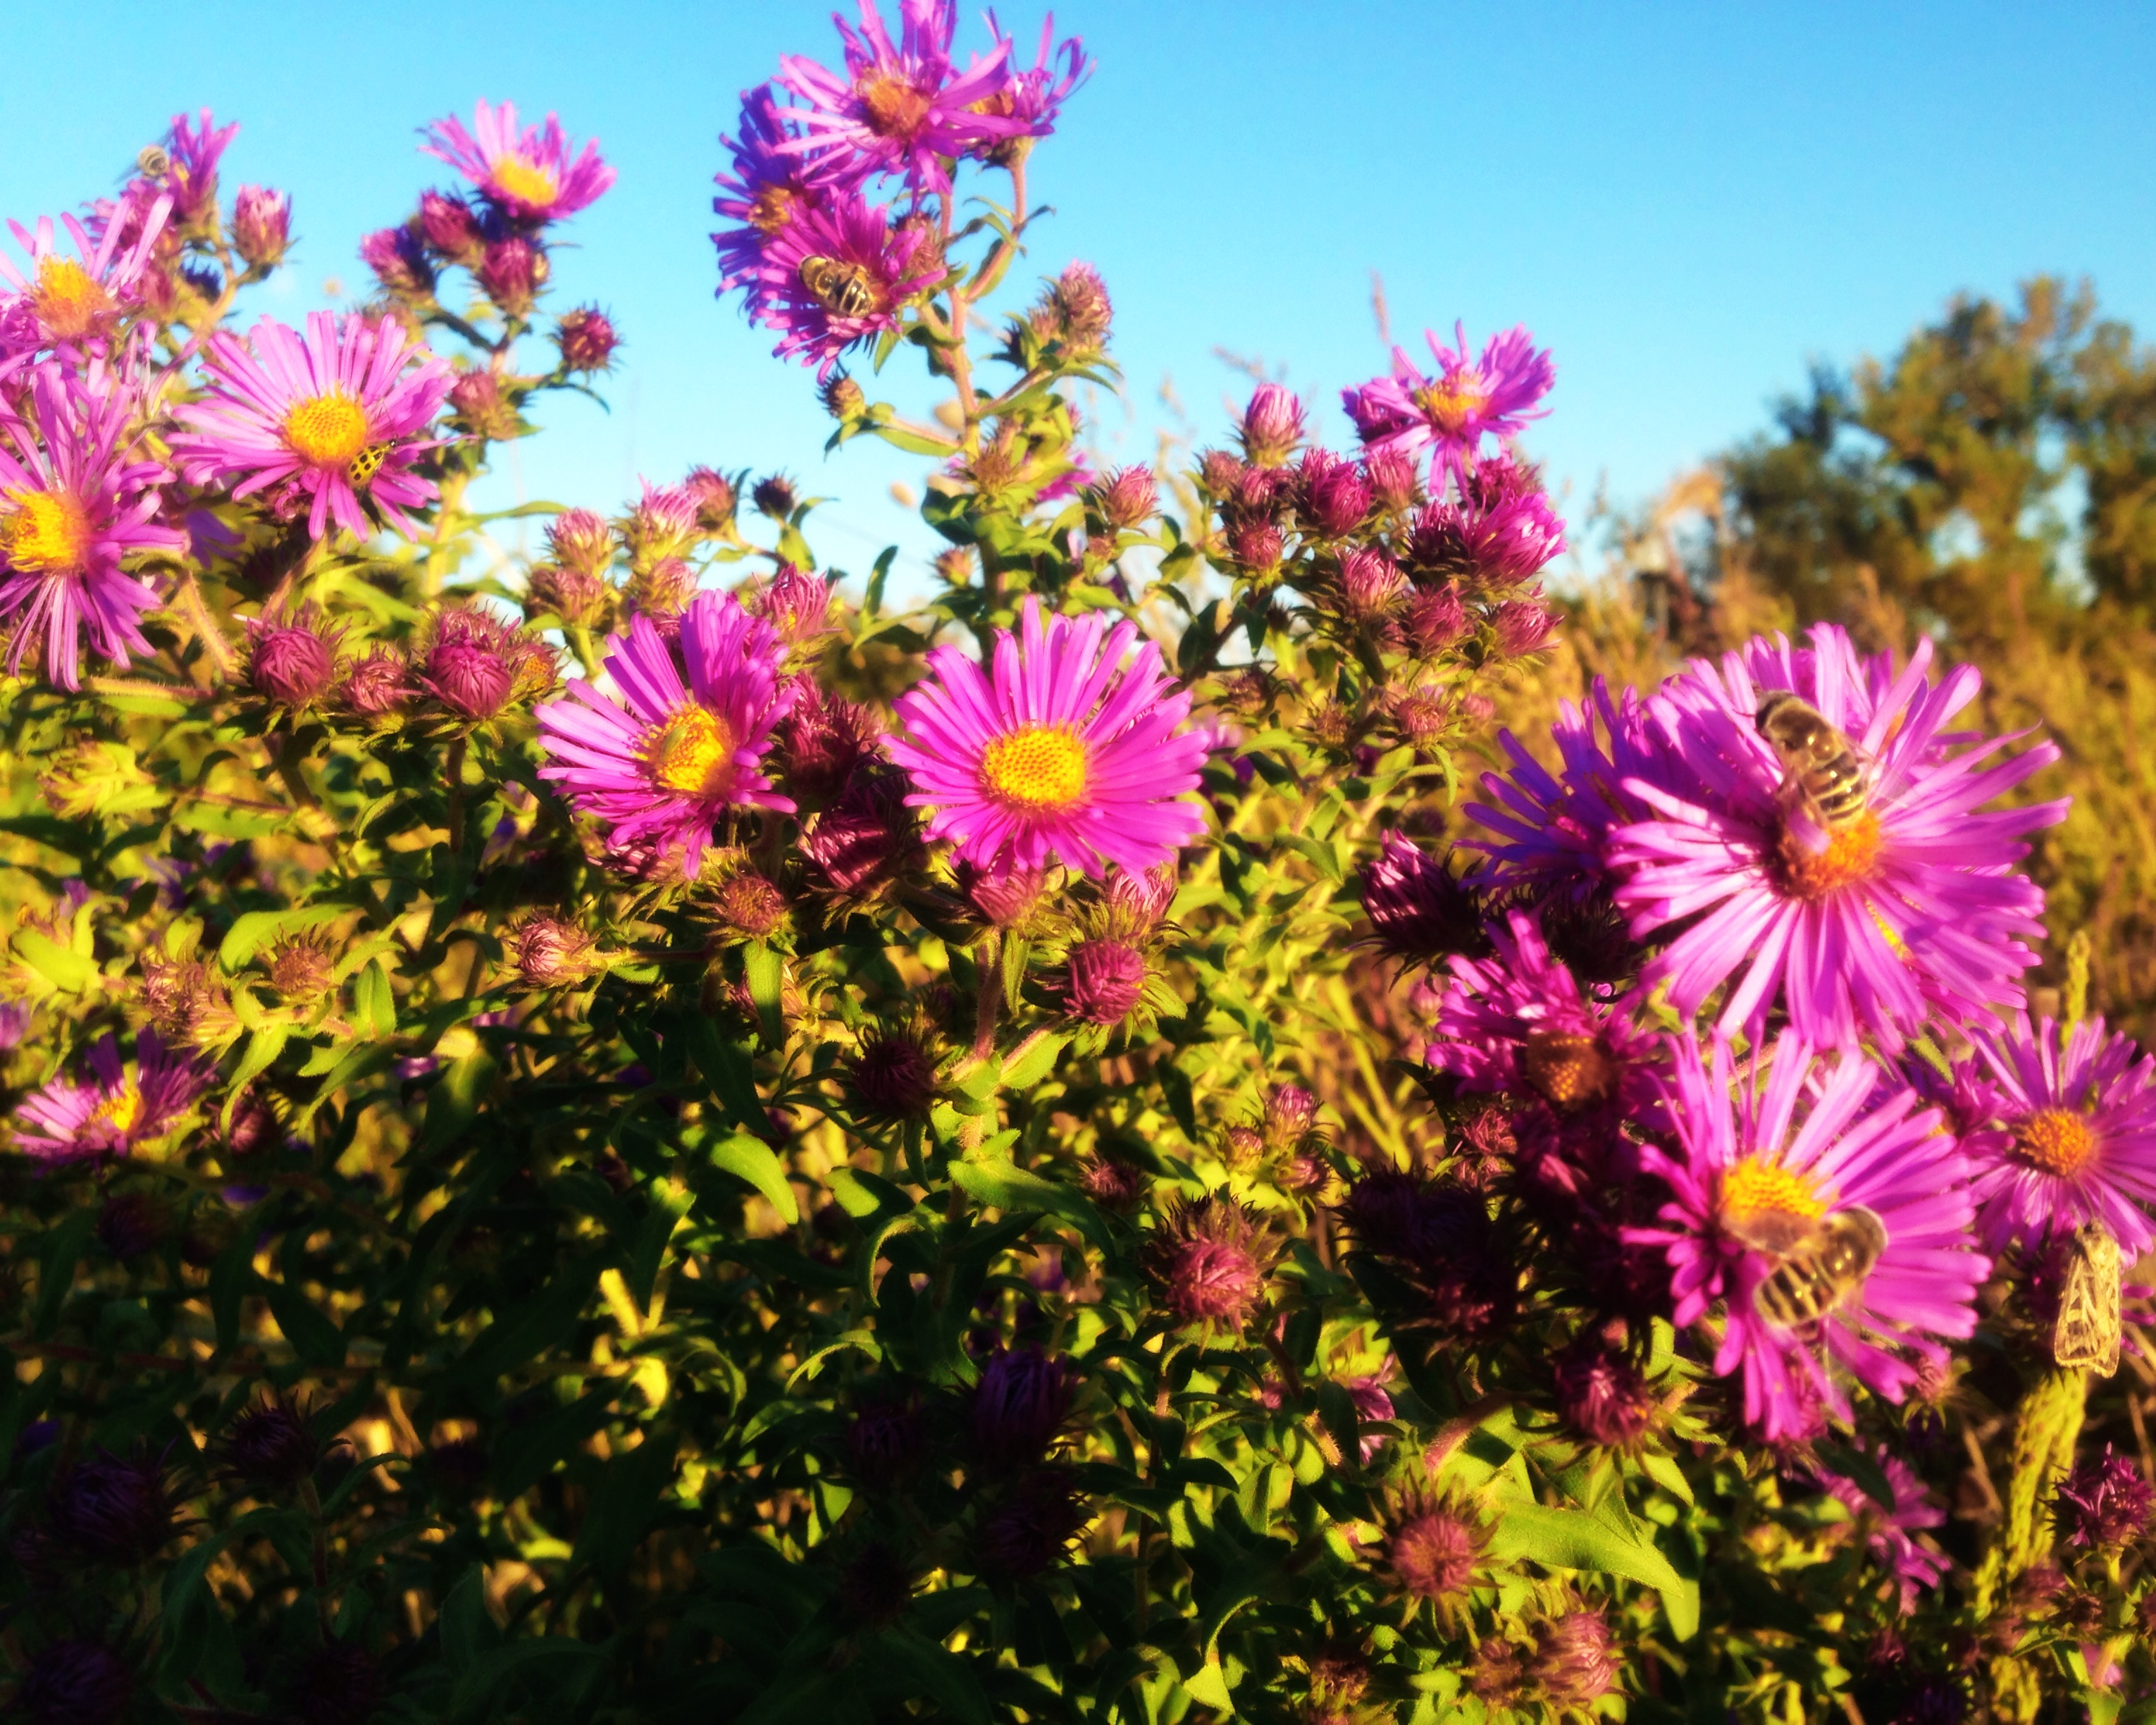 New England Aster in the wildflowers